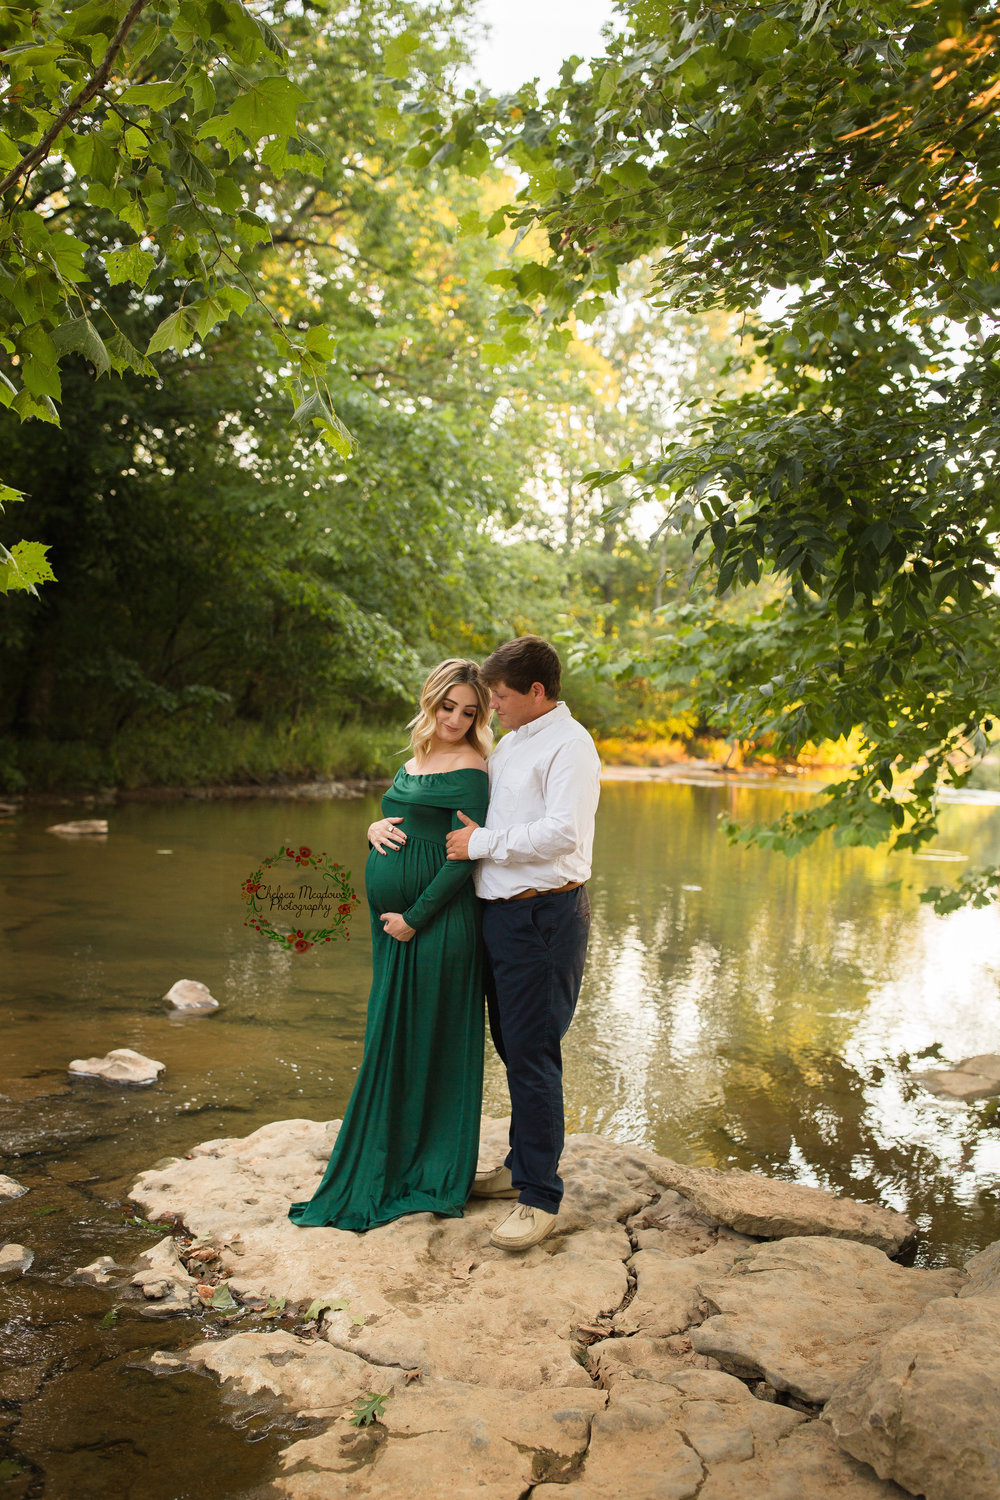 Maya Costanza Maternity - Nashville Maternity Photographer - Chelsea Meadows Photography (157).jpg